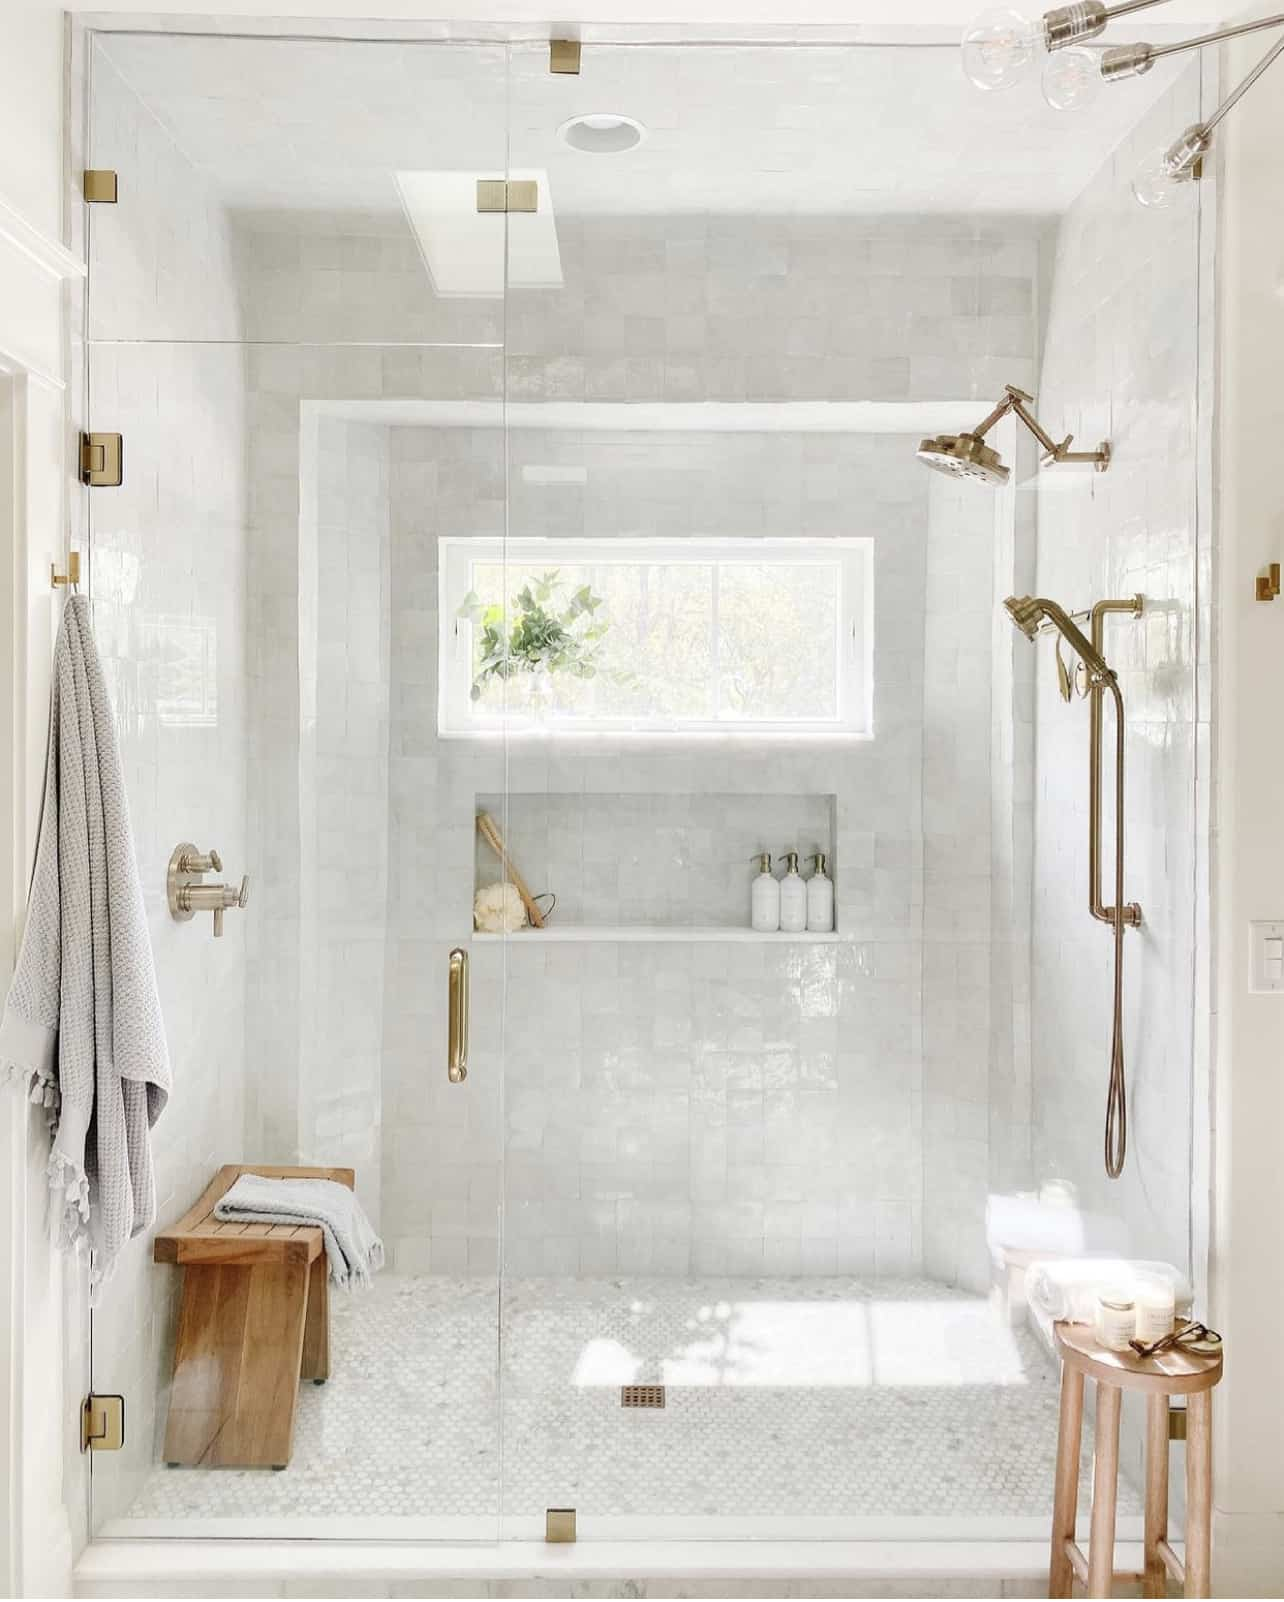 Penny marble tile used in bathroom design.